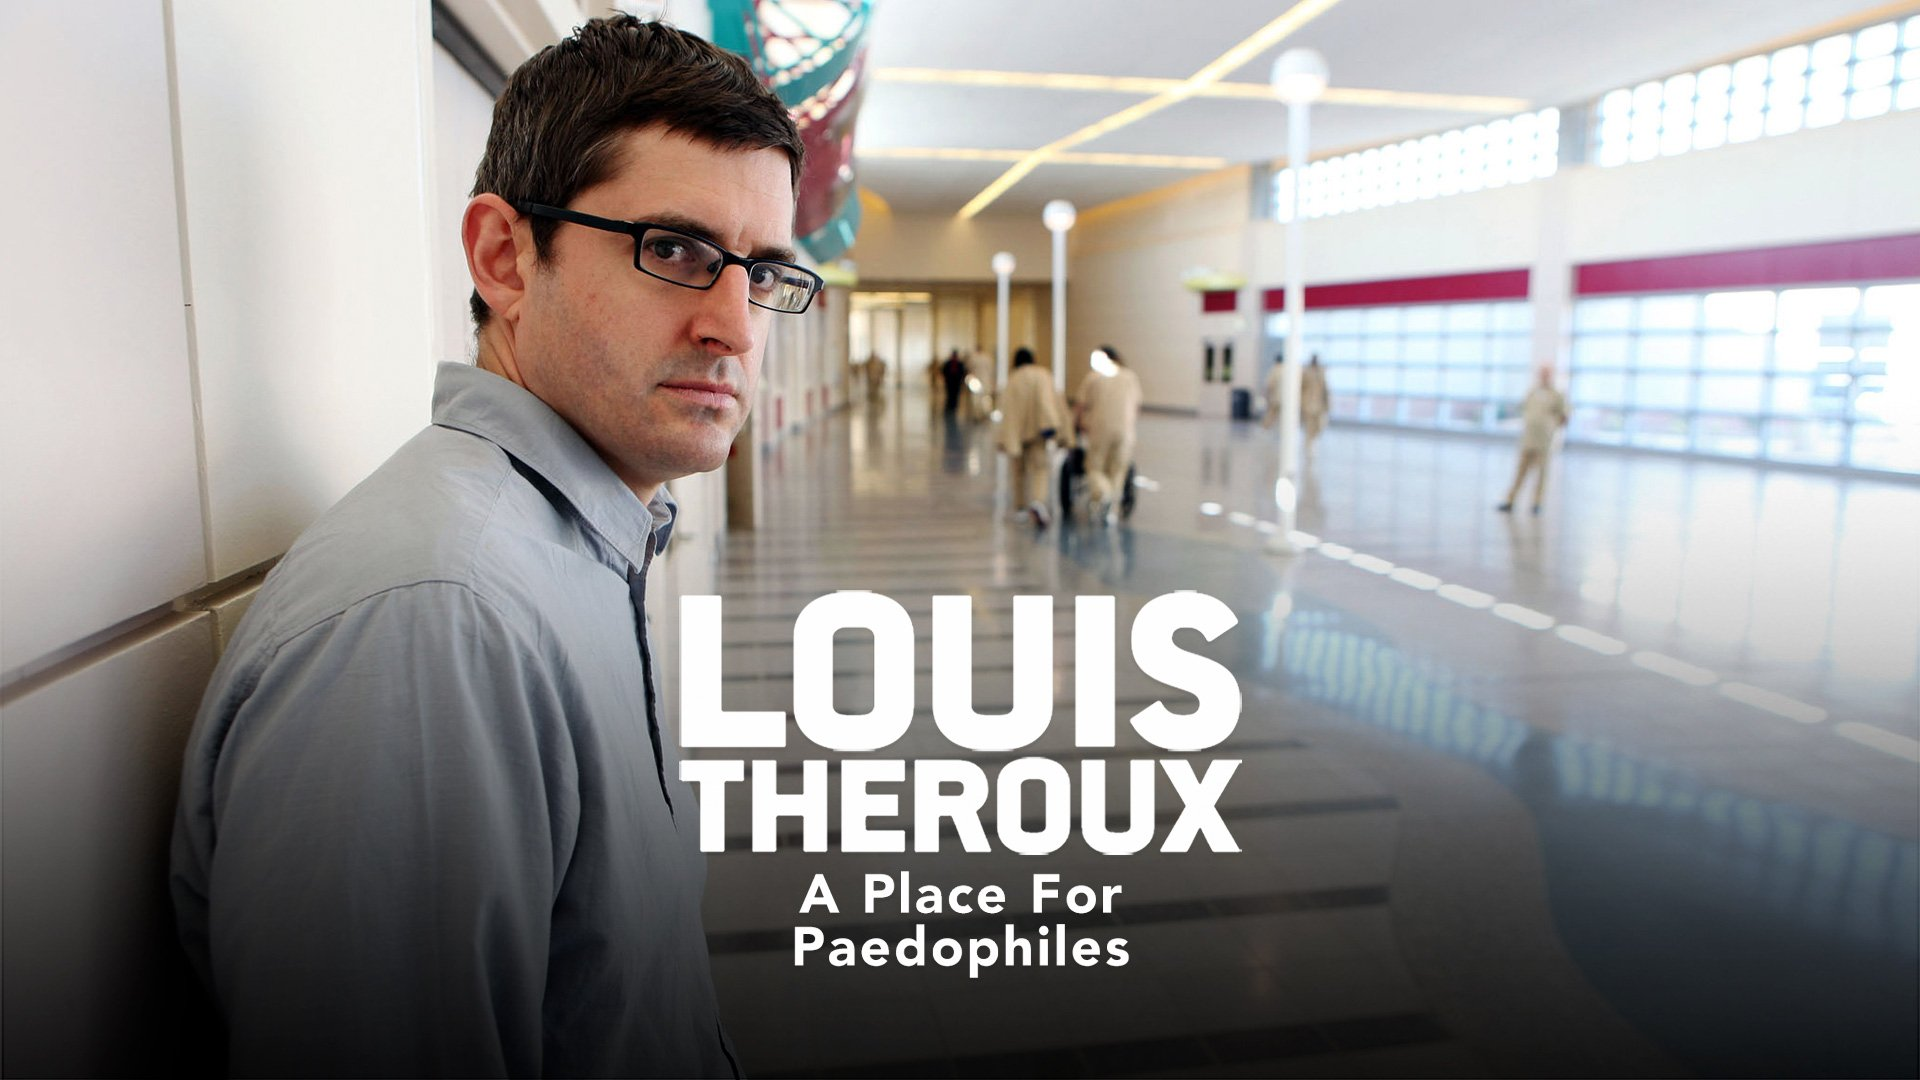 Louis Theroux: A Place For Paedophiles on BritBox UK